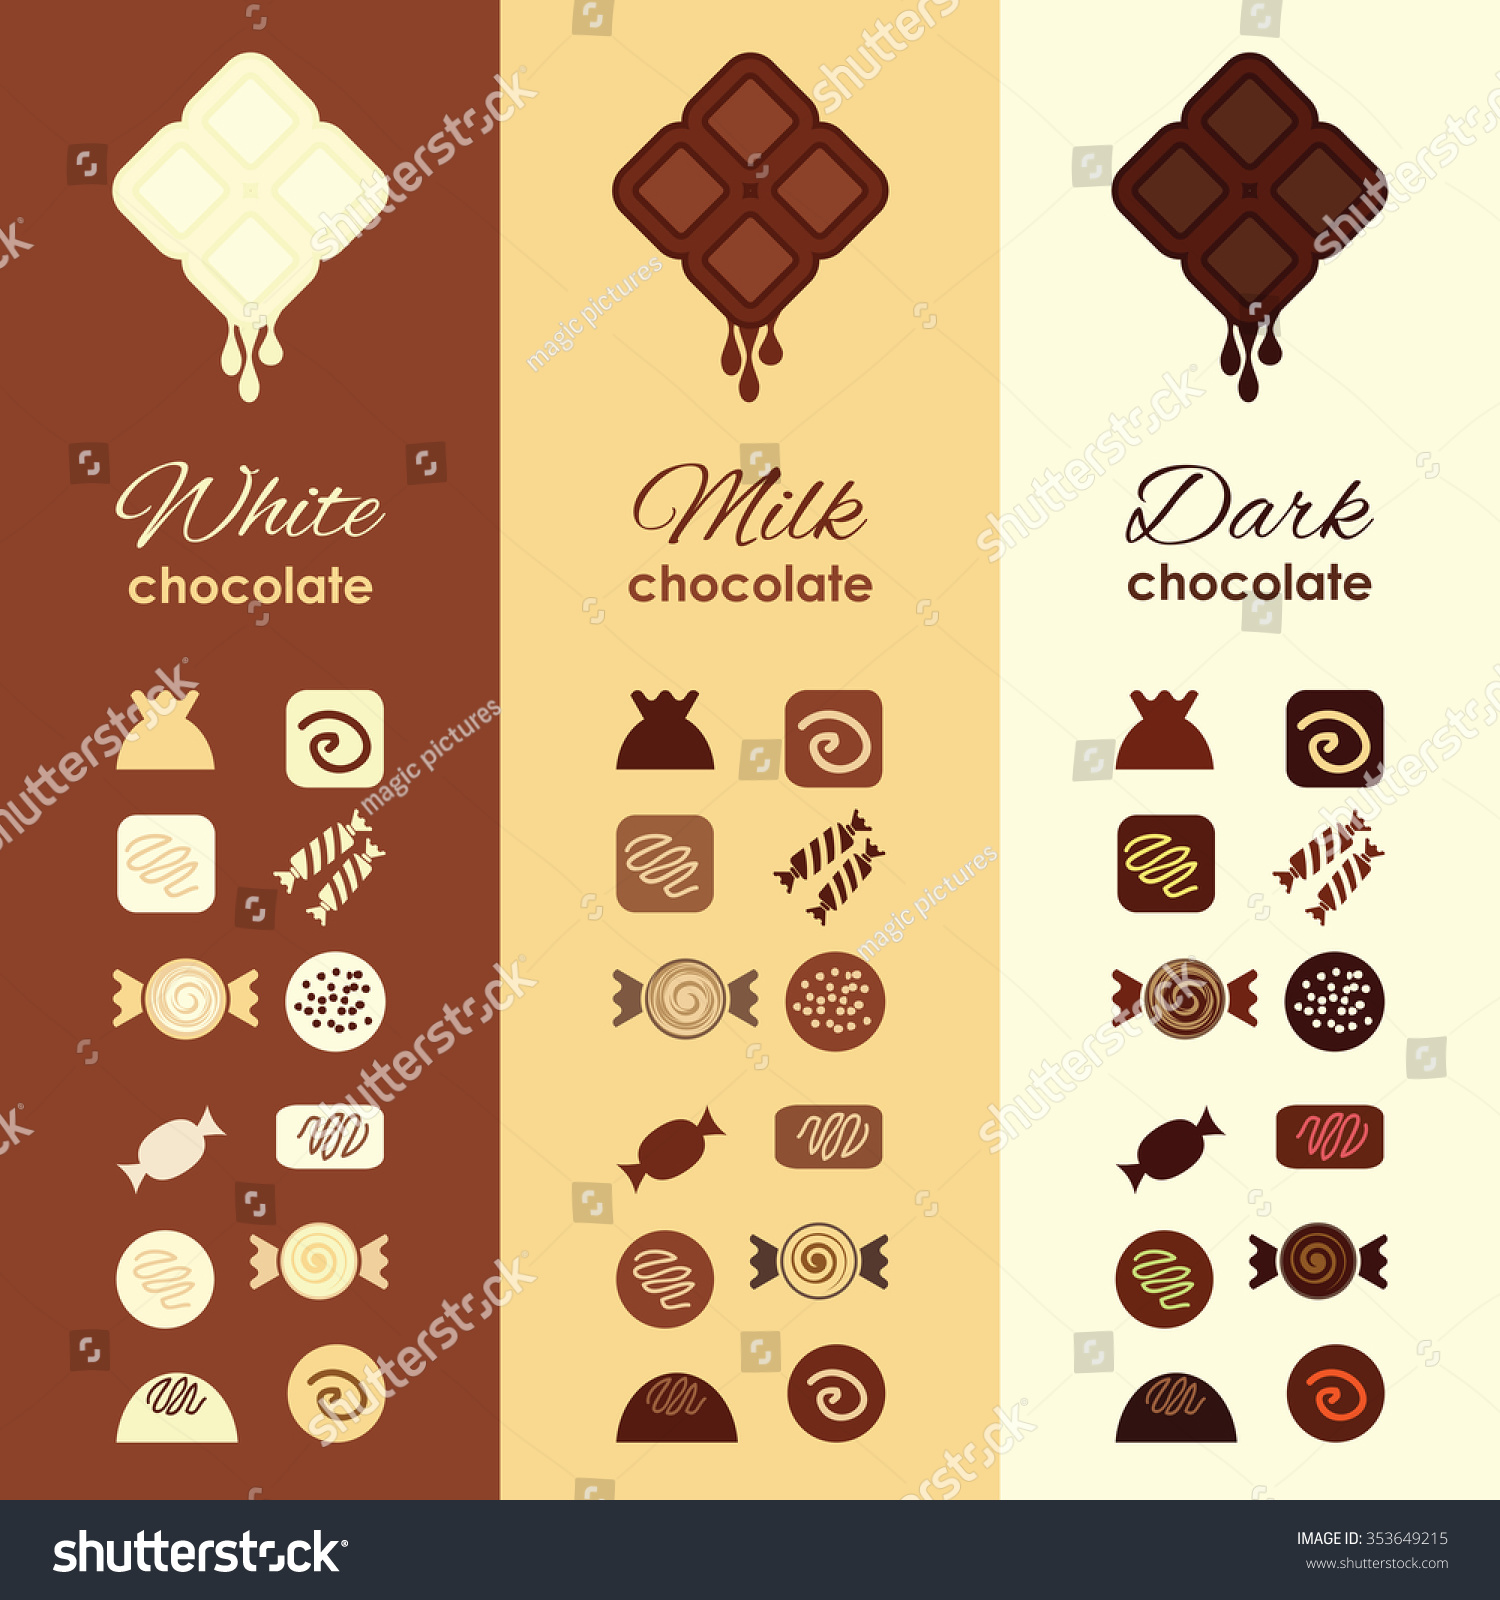 Vector Illustration Types Chocolate Stock Vector 353649215 ...